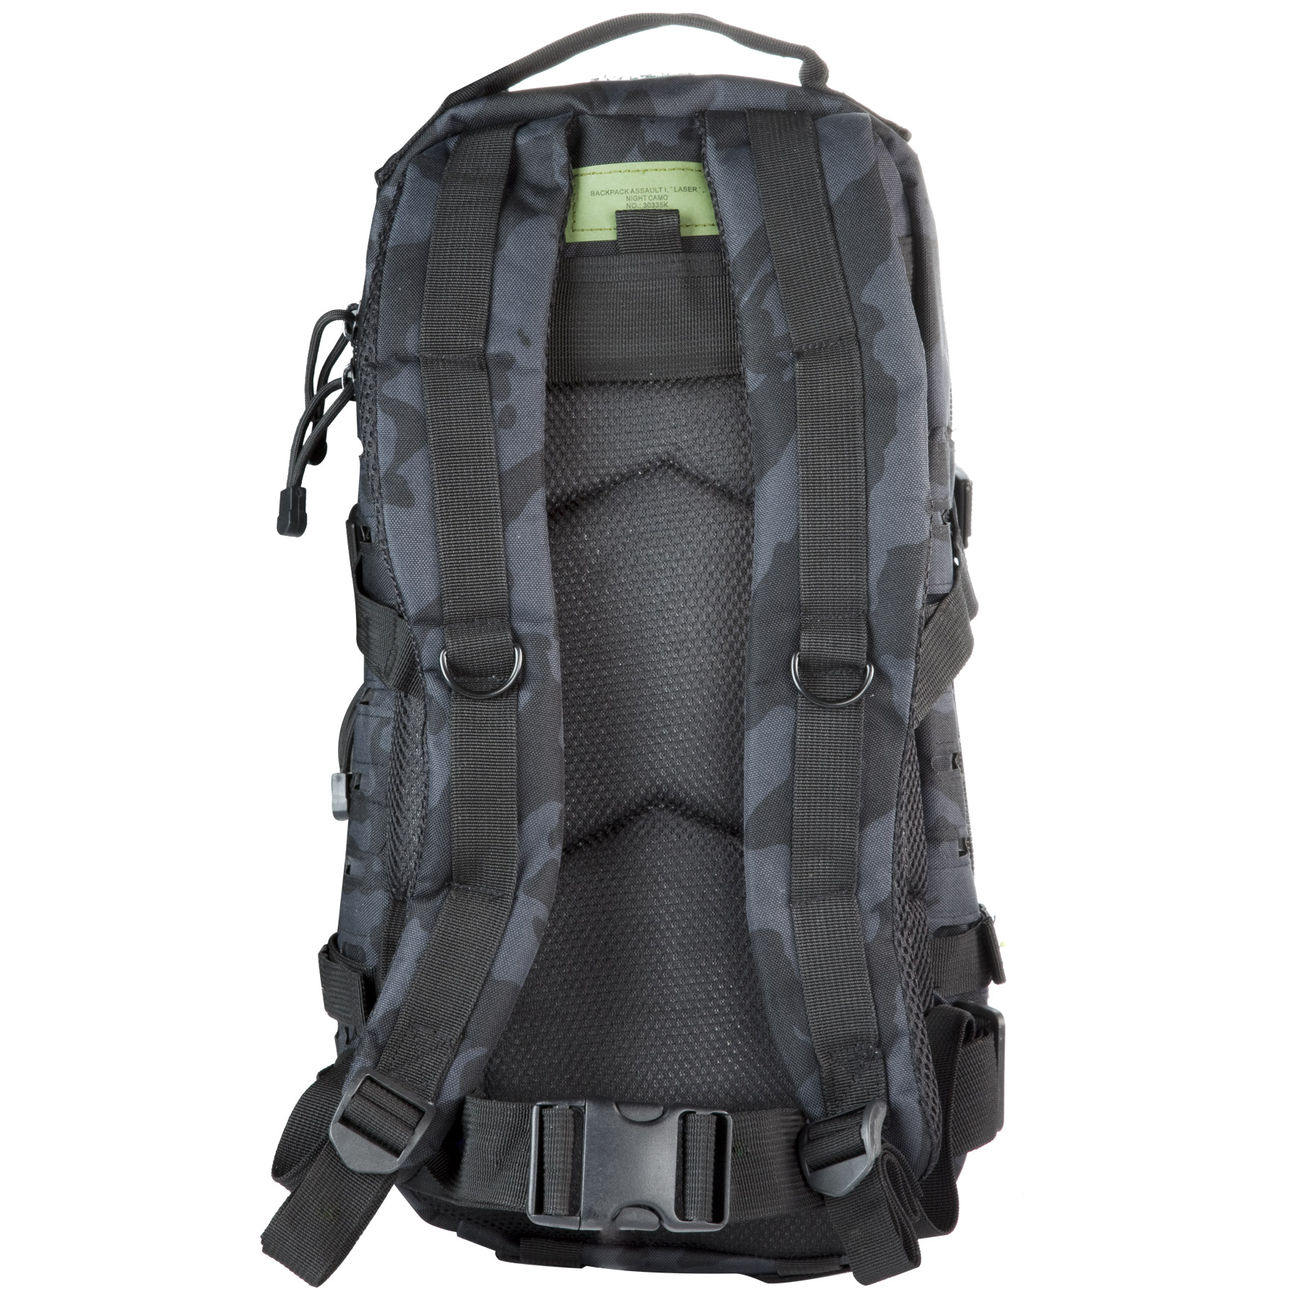 MFH Rucksack US Assault I Laser 30L night camo 2